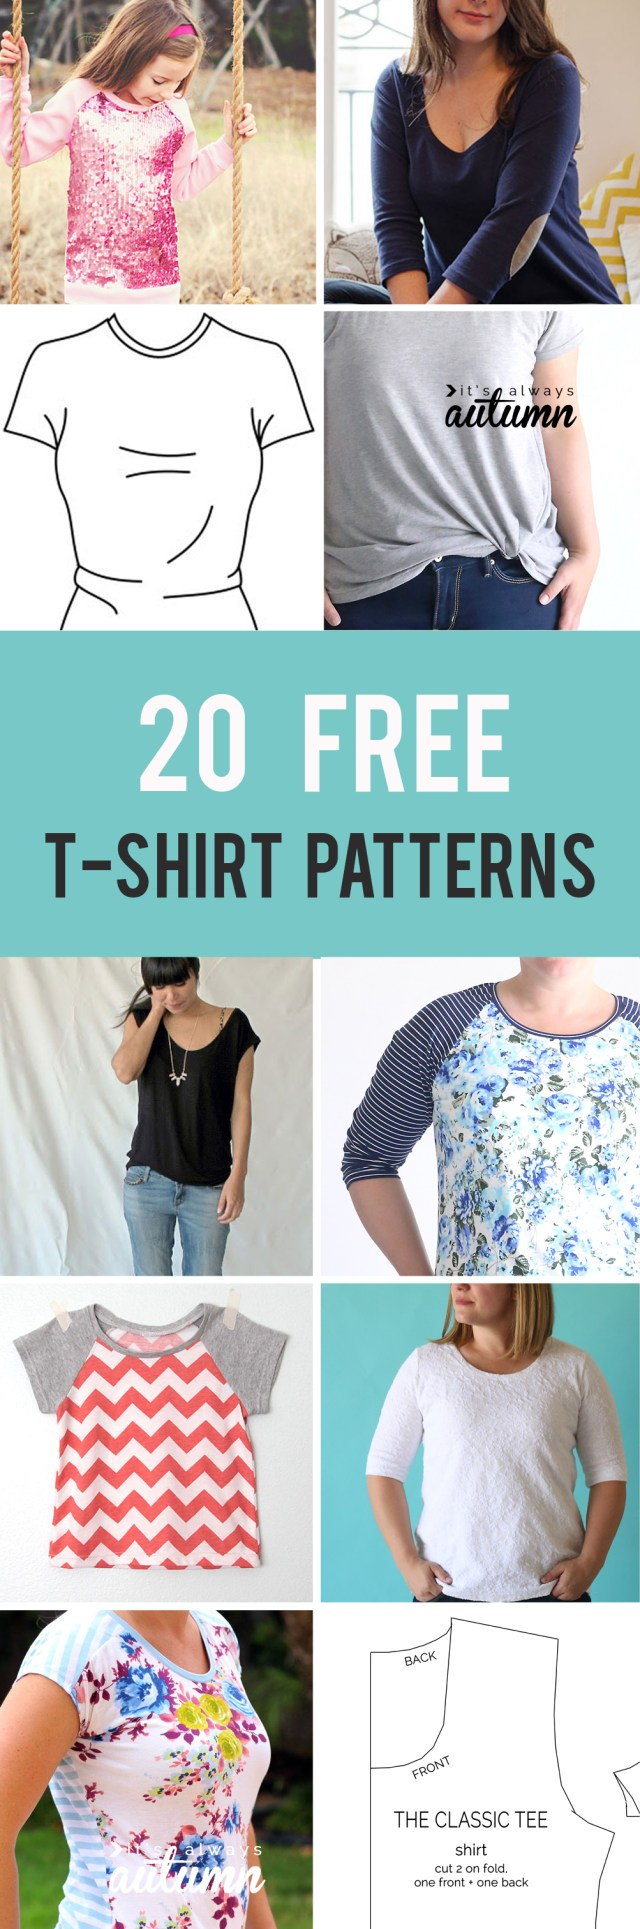 Free Sewing Pattern 20 Free T Shirt Patterns You Can Print Sew At Home Its Always